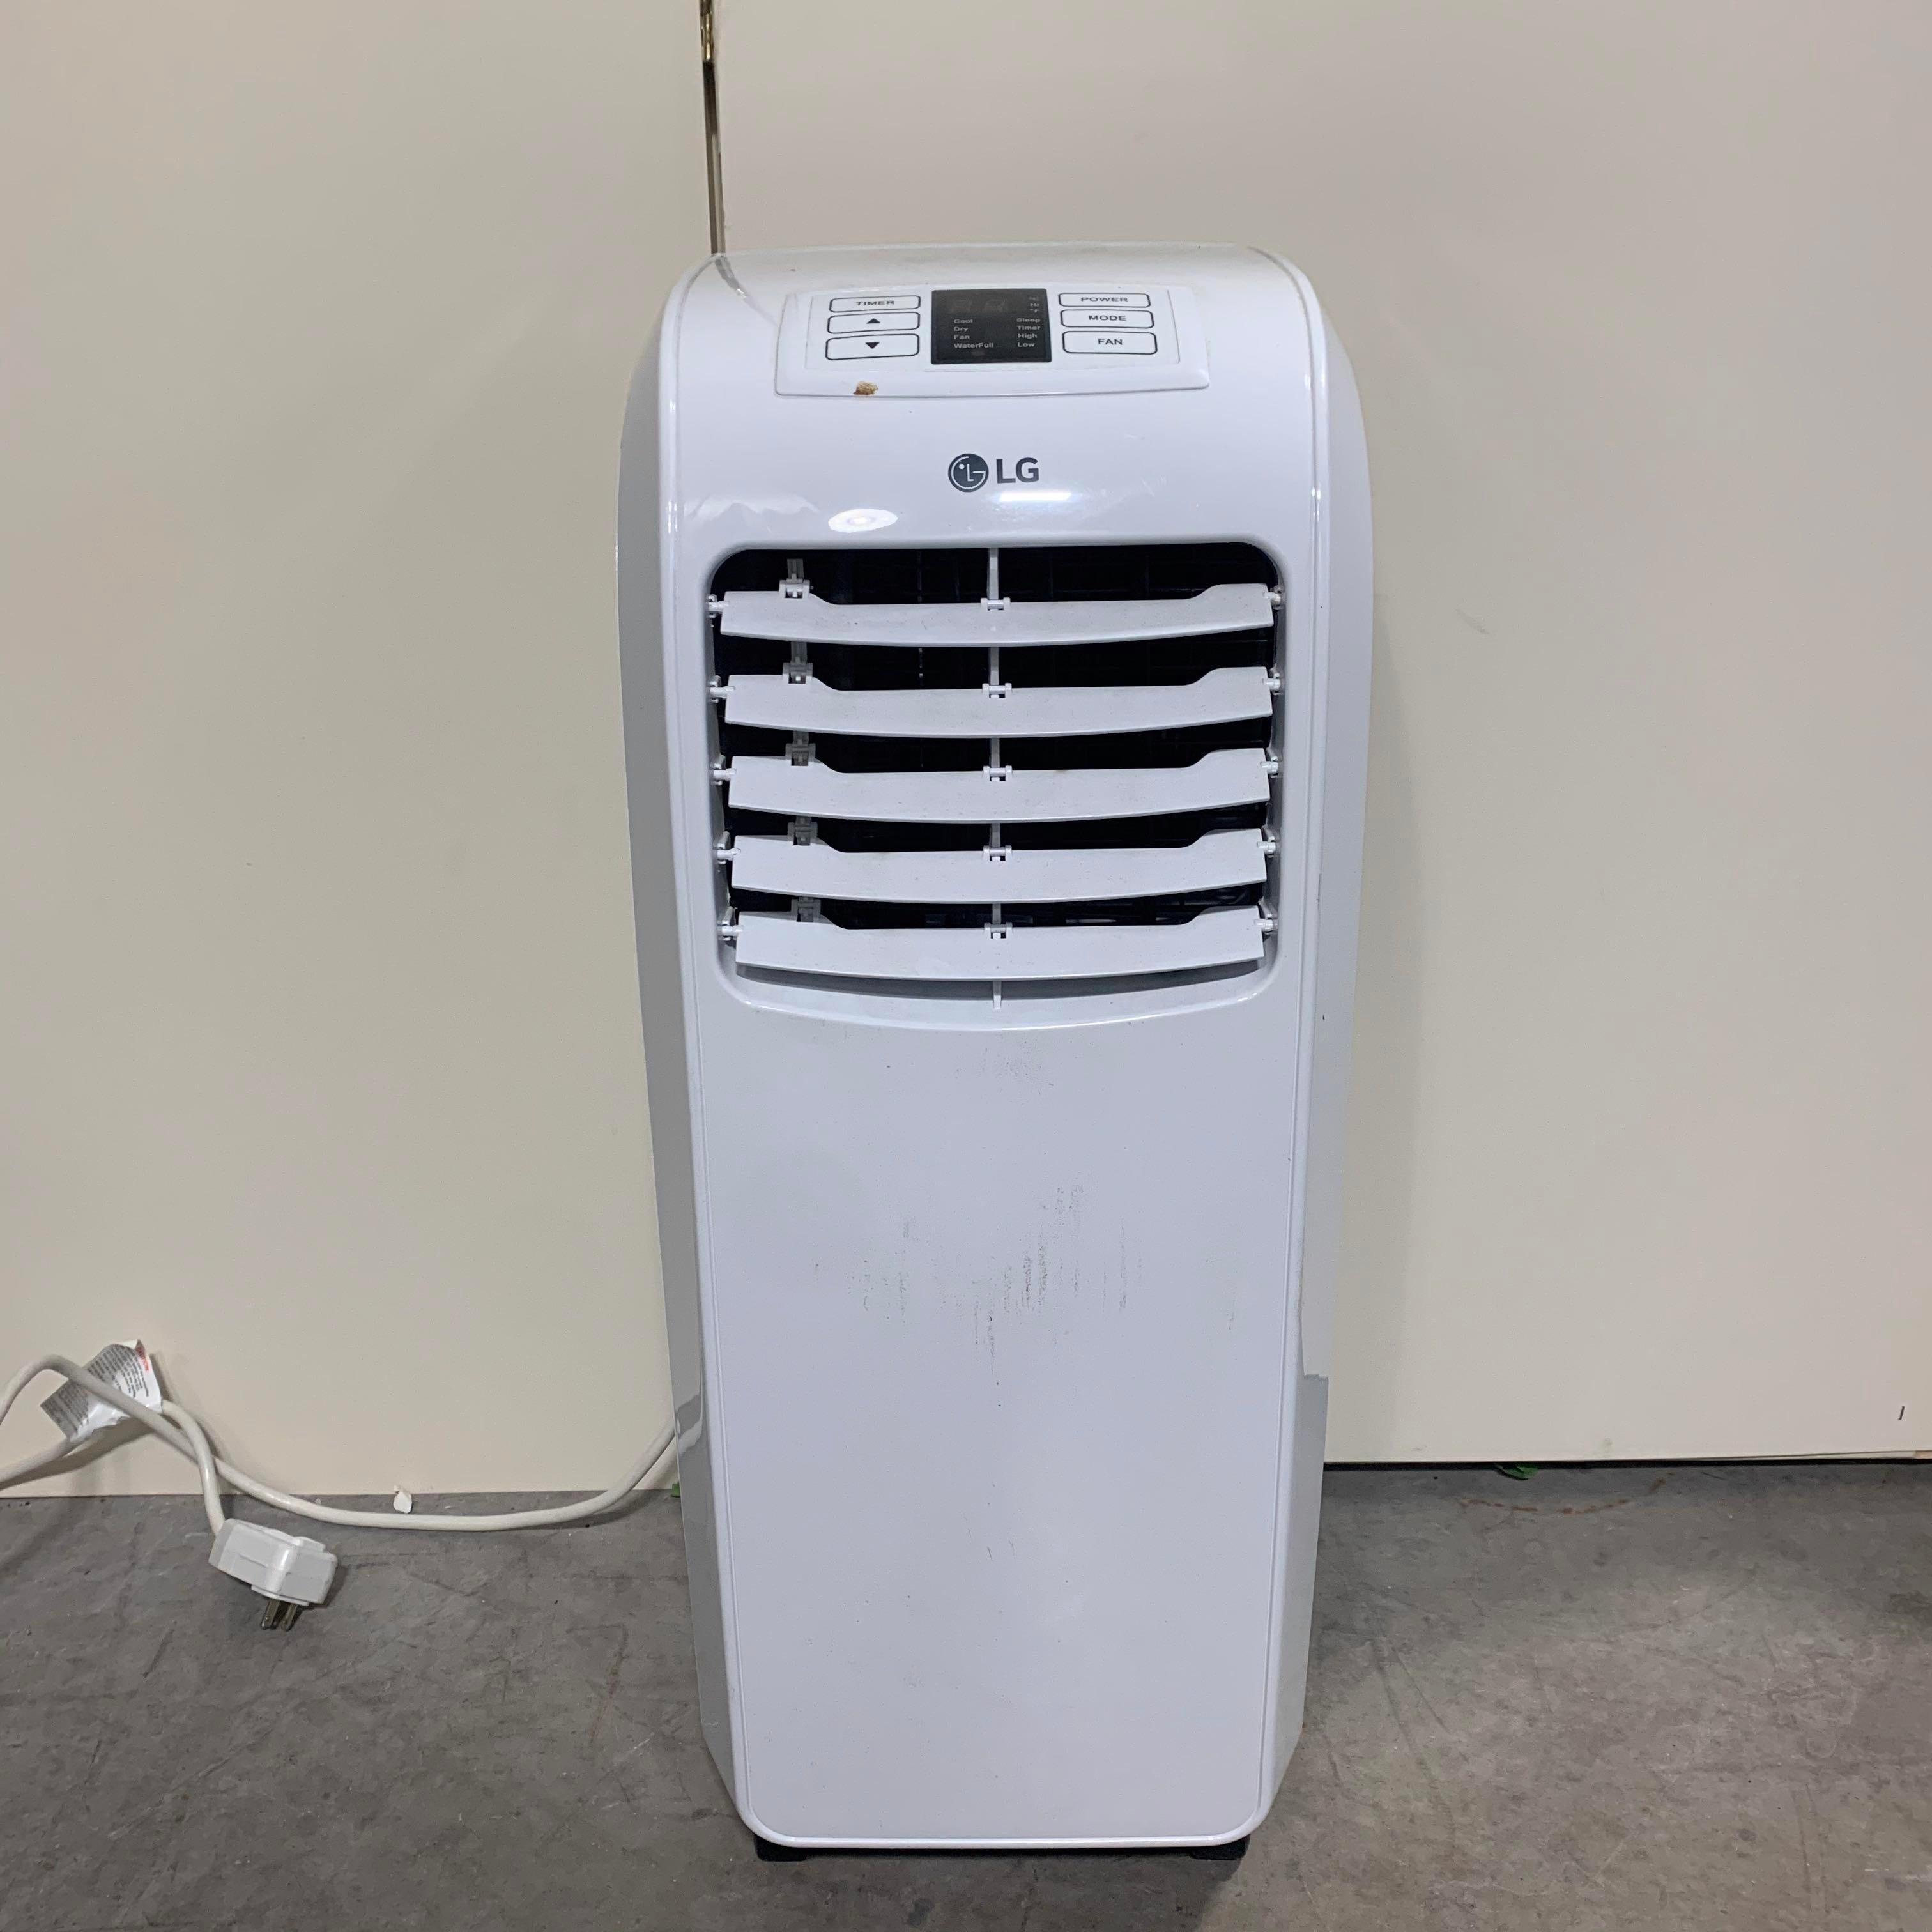 "13 7/8"" x 11 13/16"" x 29 3/4"" LG White 8,000 BTU Portable Air Conditioner (Does Not Have Vent Kit)"